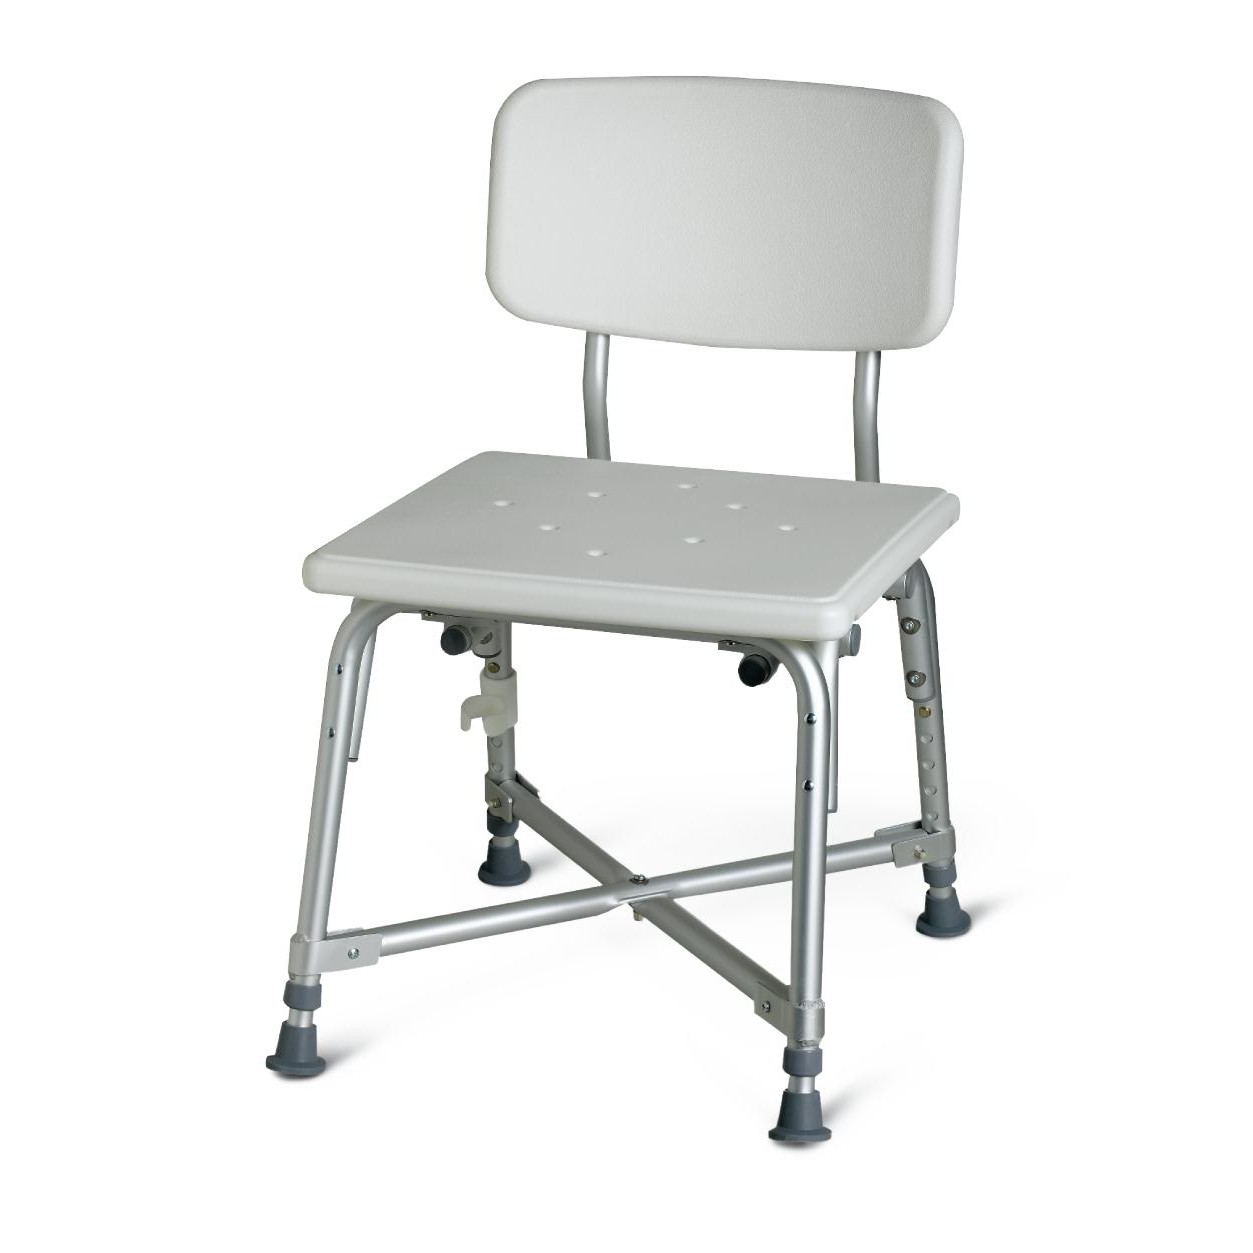 Medline Bariatric Aluminum Bath Bench w/ Back